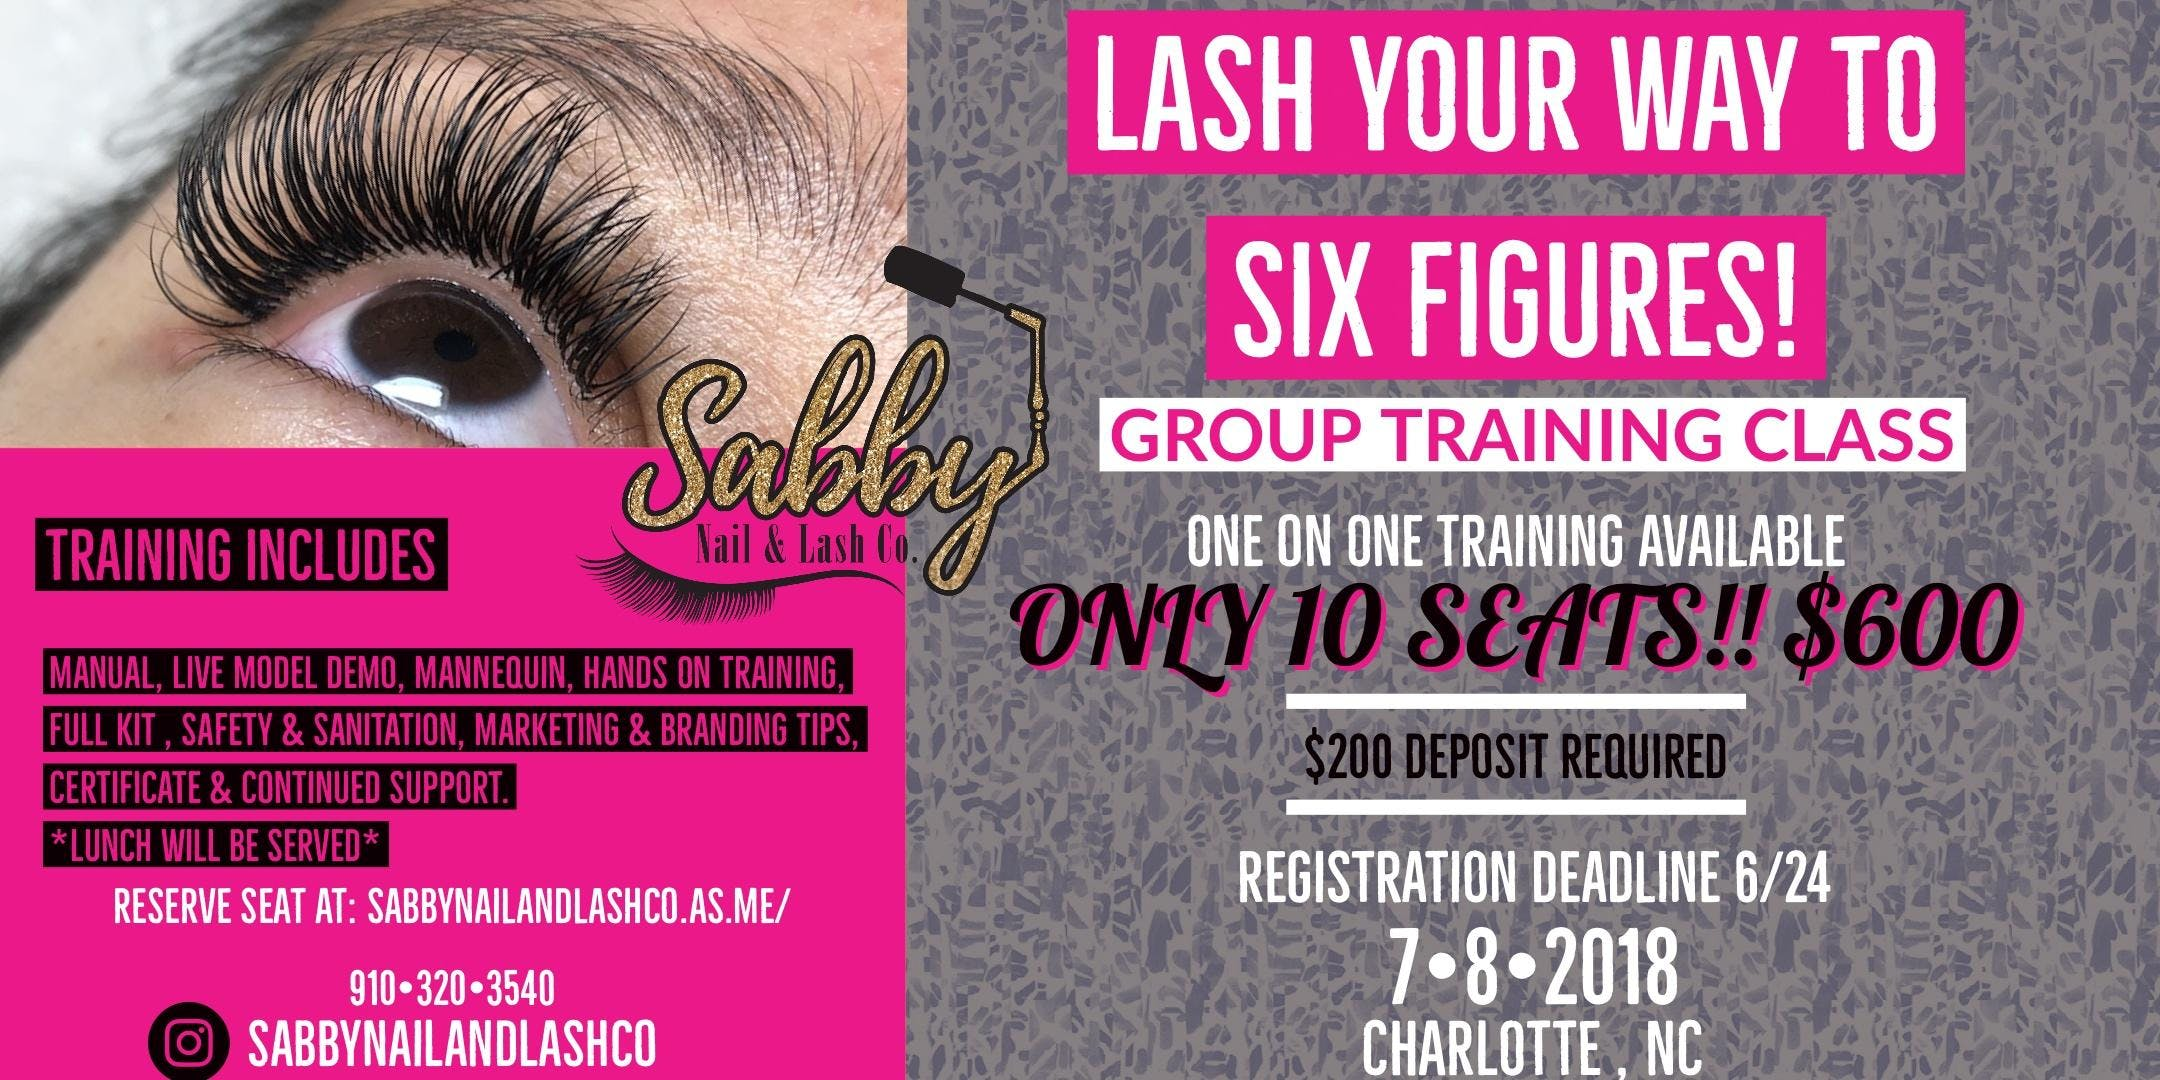 Eyelash Extension Training At Embassy Suites By Hilton Charlotte